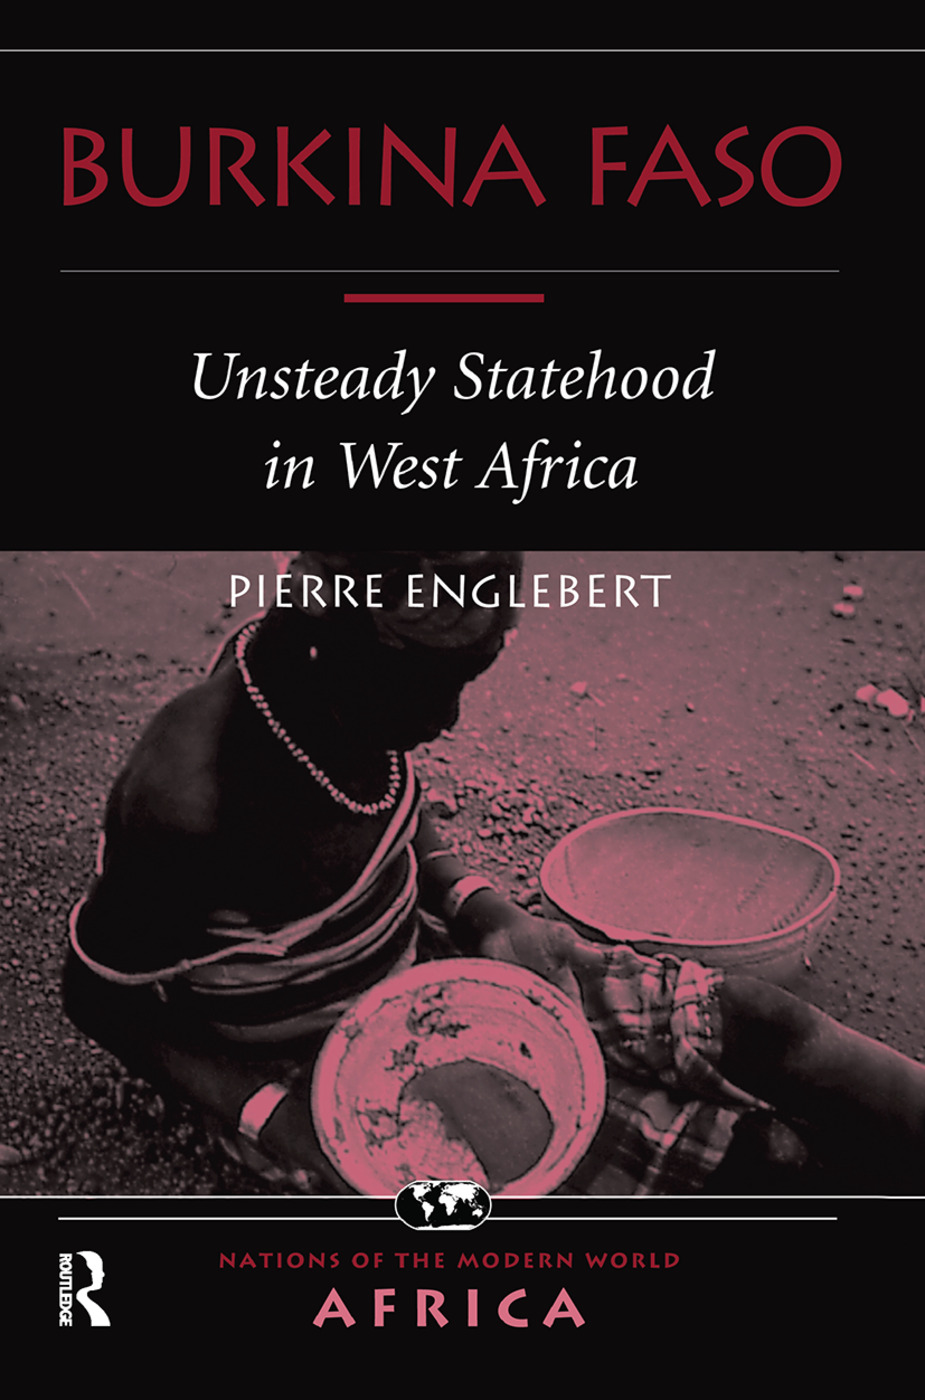 Burkina Faso: Unsteady Statehood In West Africa, 1st Edition (Hardback) book cover